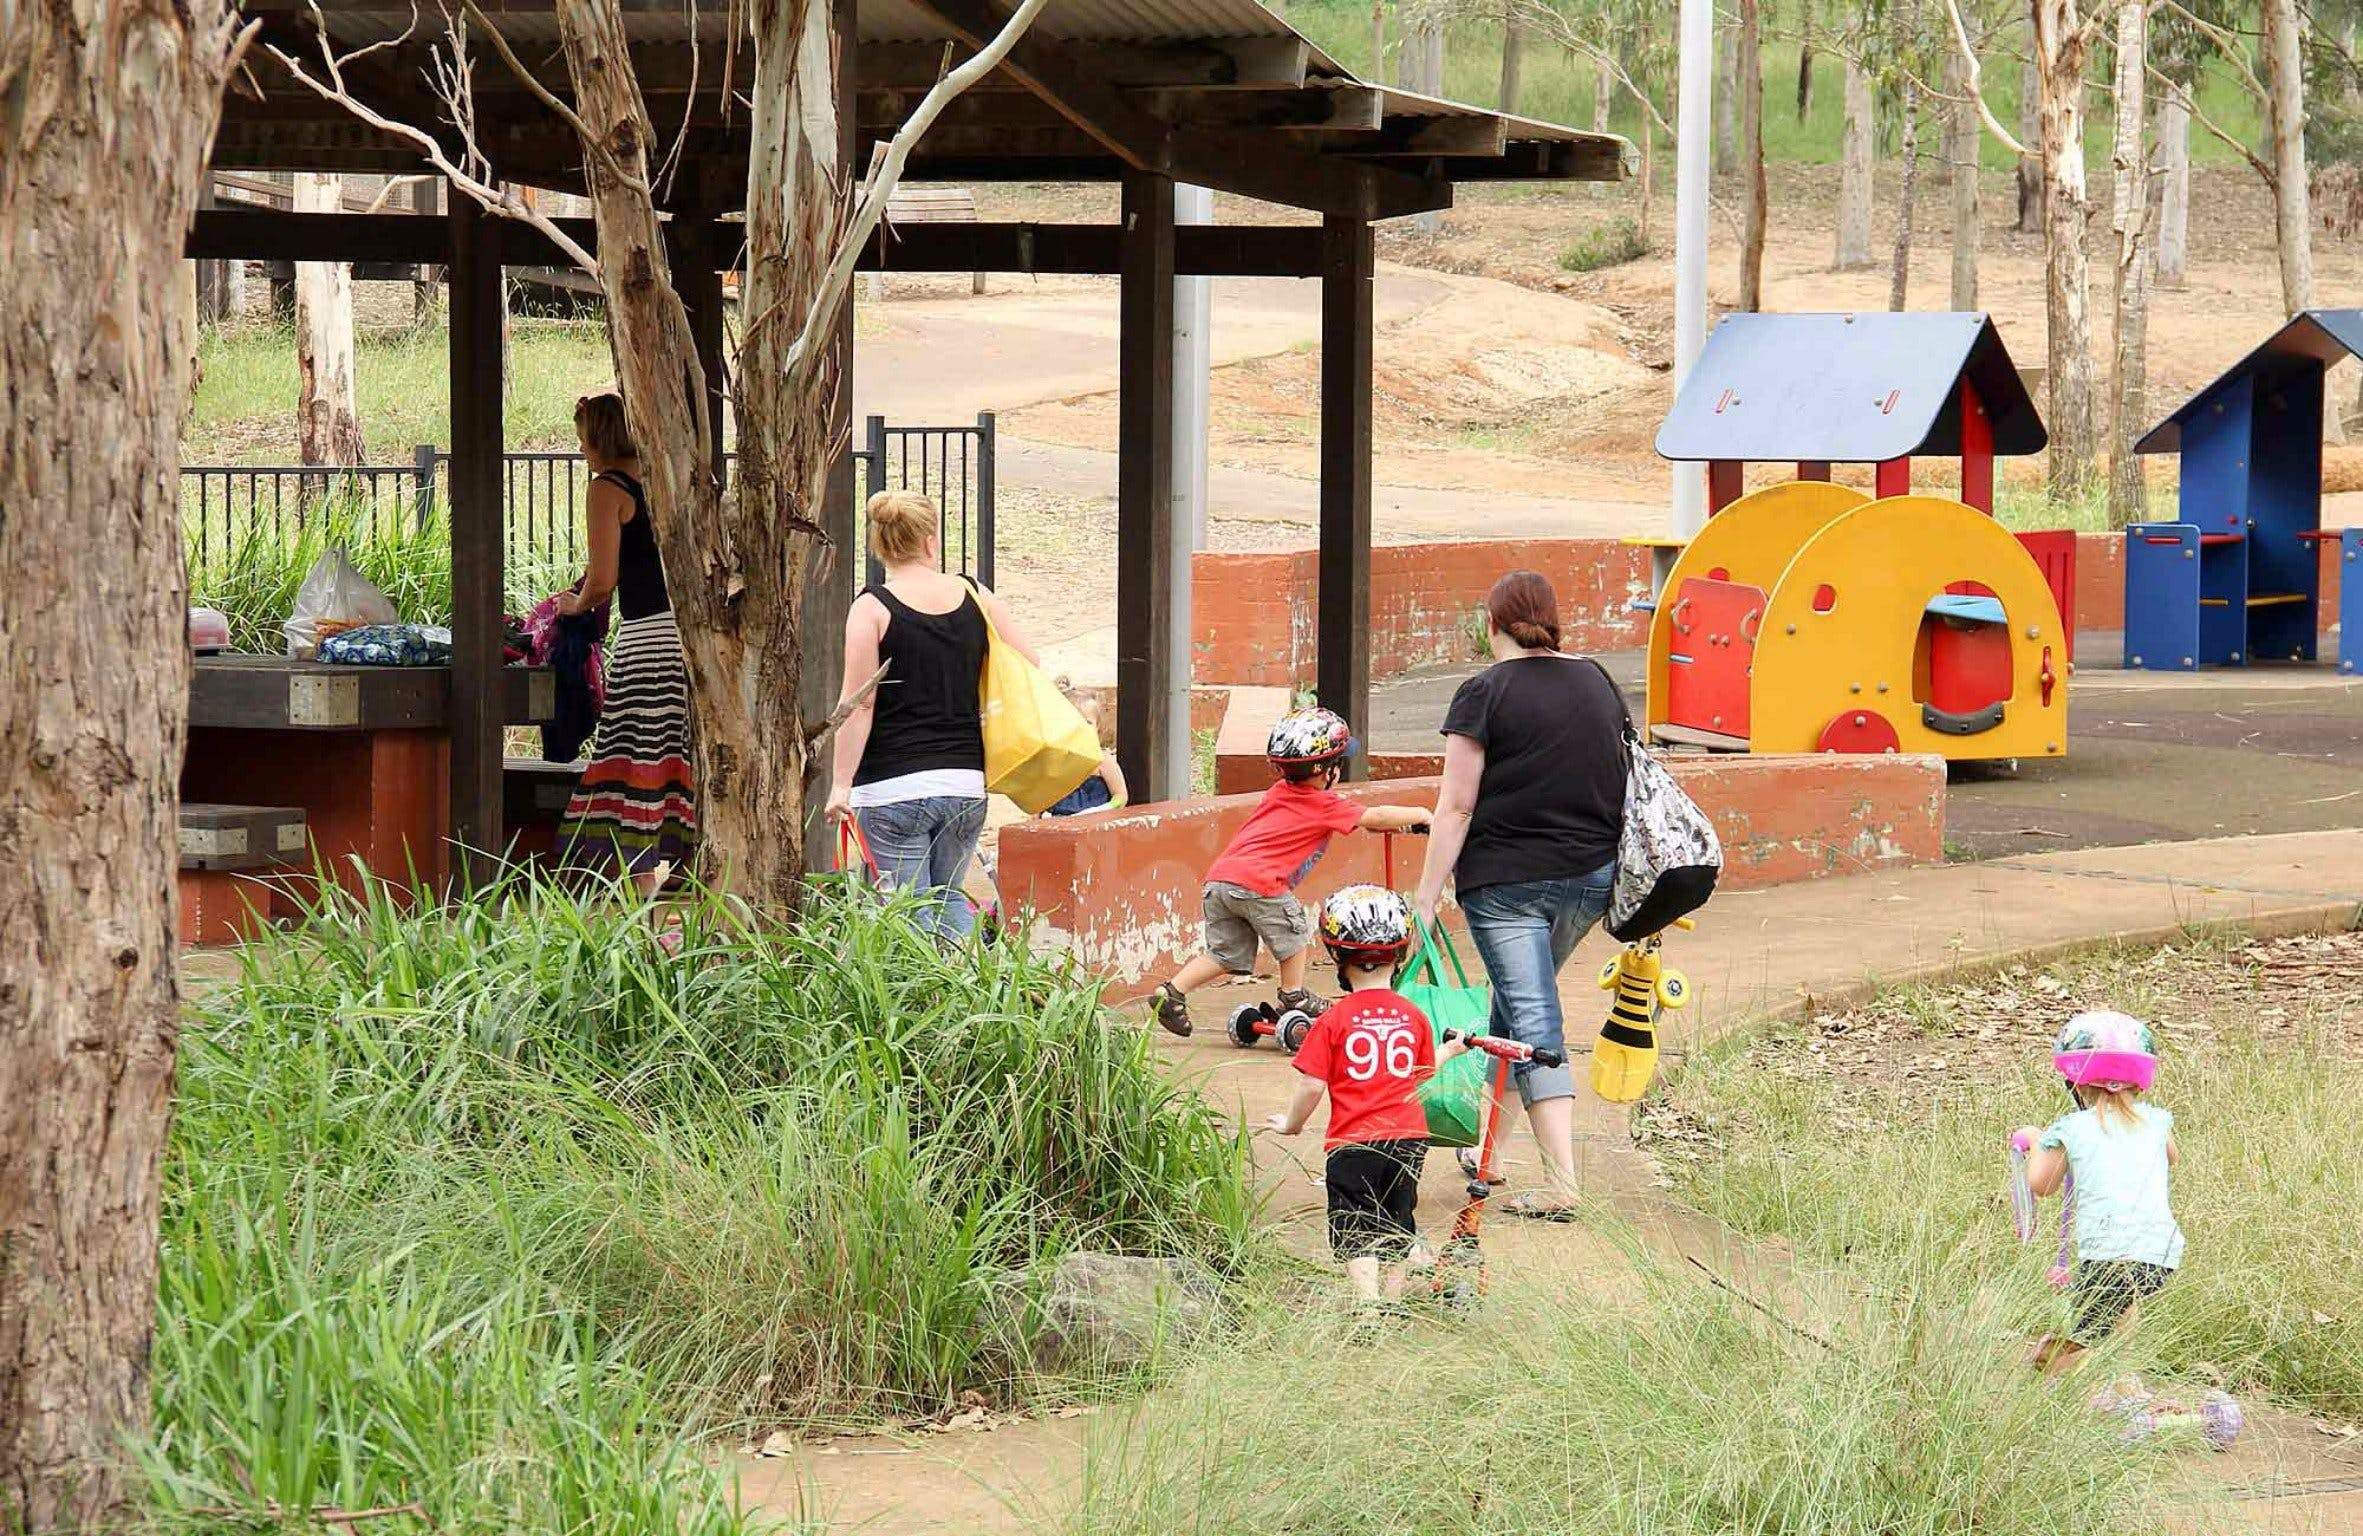 Rouse Hill picnic area and playground - Wagga Wagga Accommodation